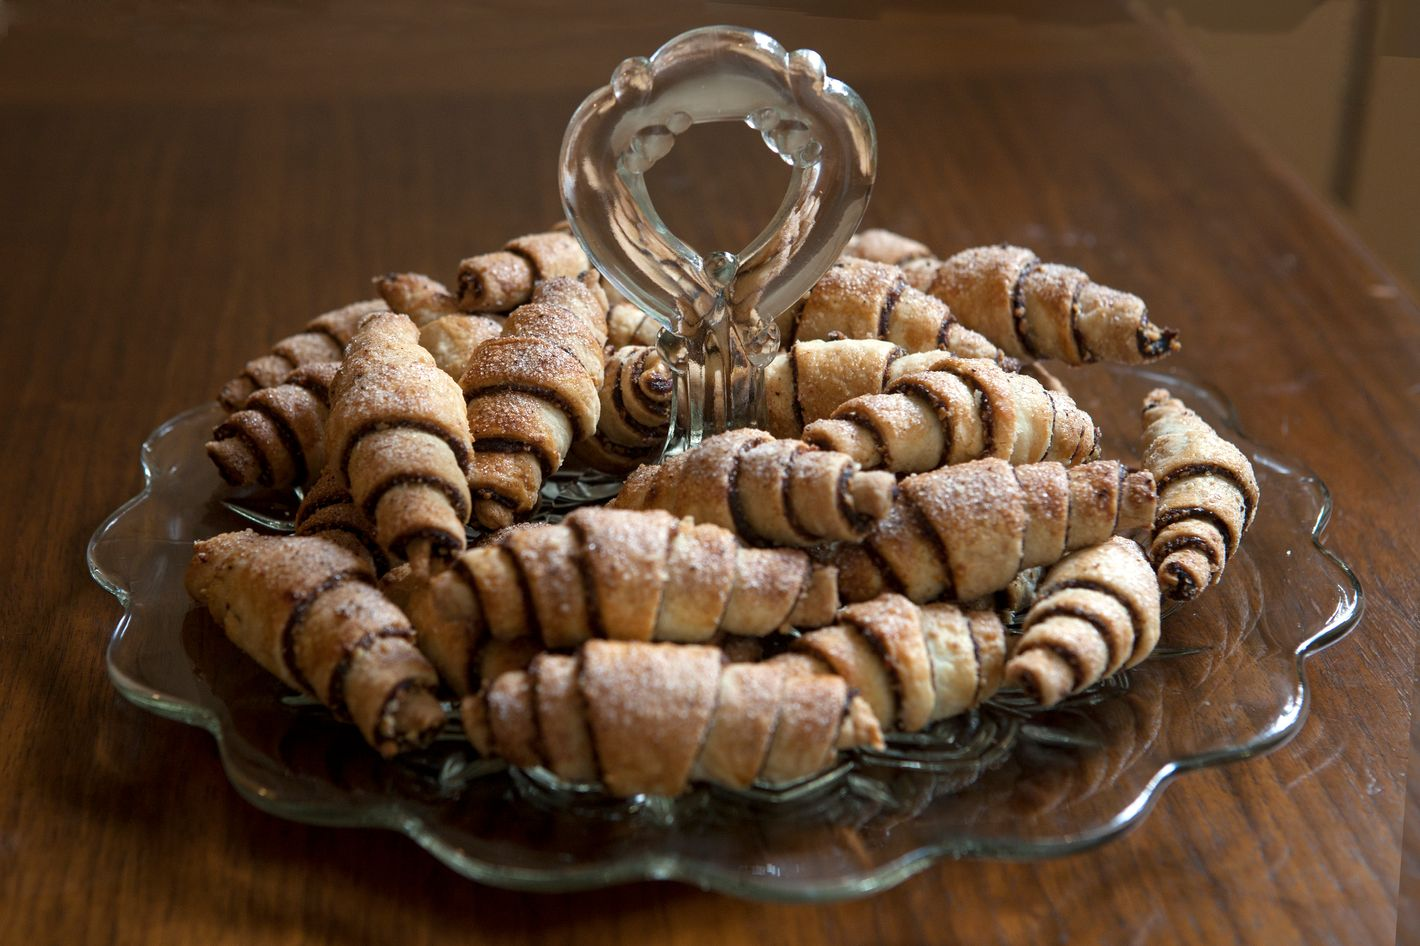 Can we interest you in some rugelach?